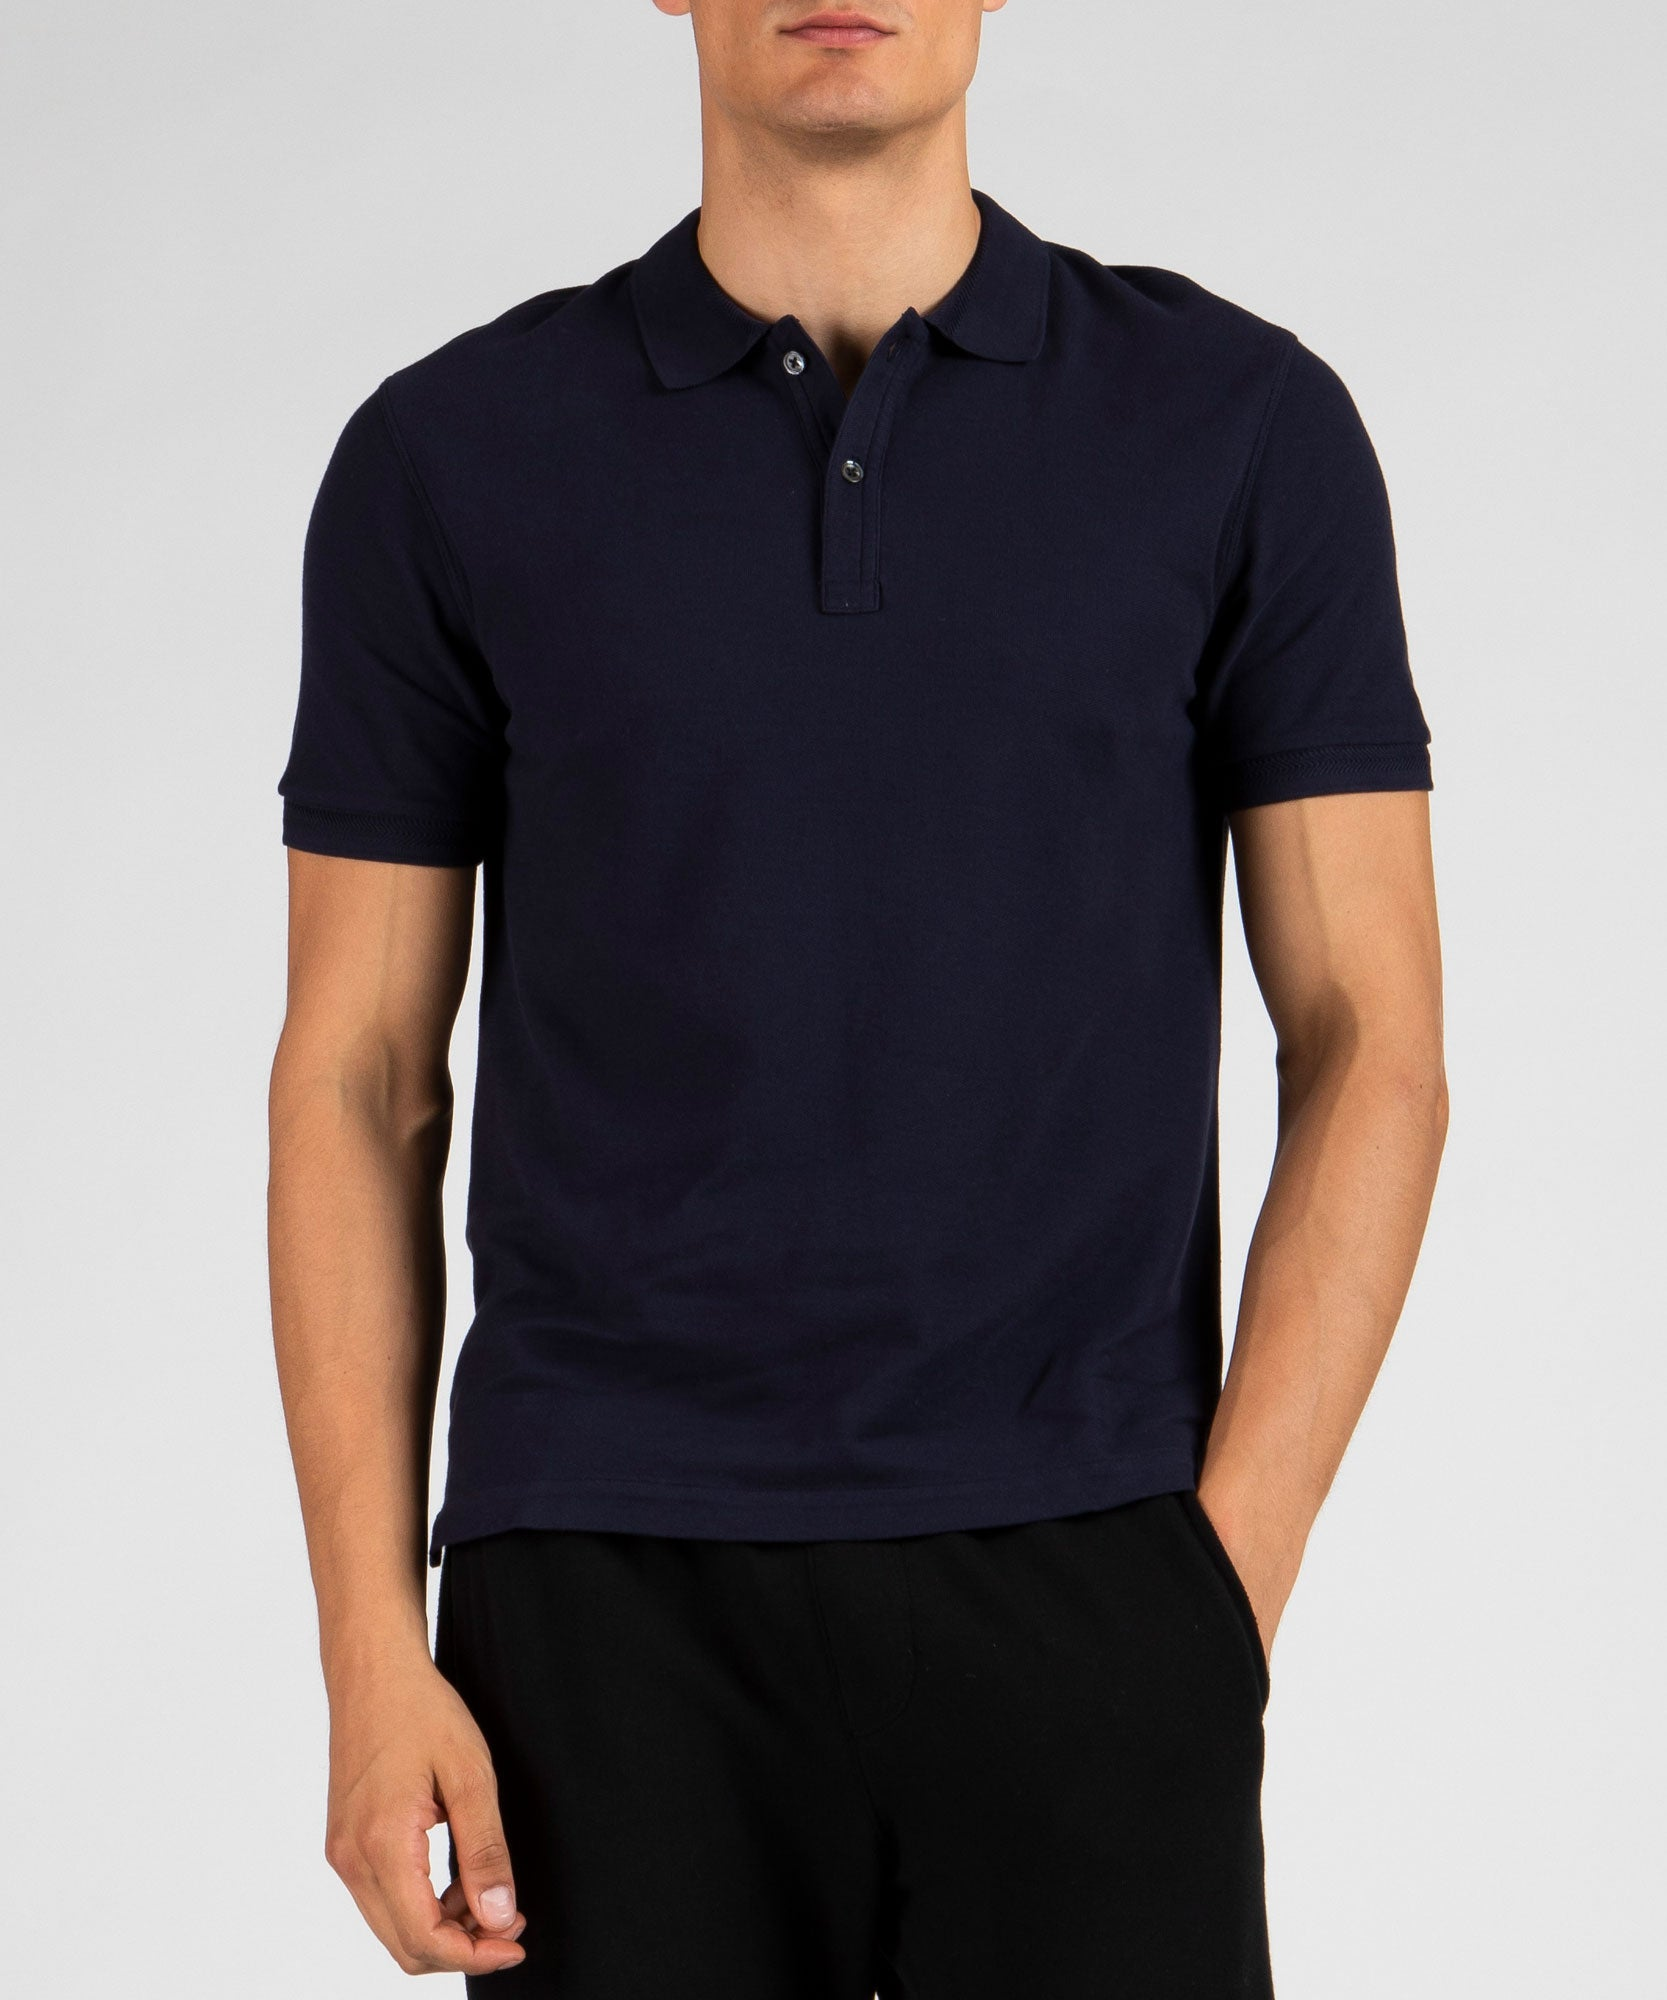 Midnight Cotton Pique Classic Polo - Men's Polo Shirt by ATM Anthony Thomas Melillo